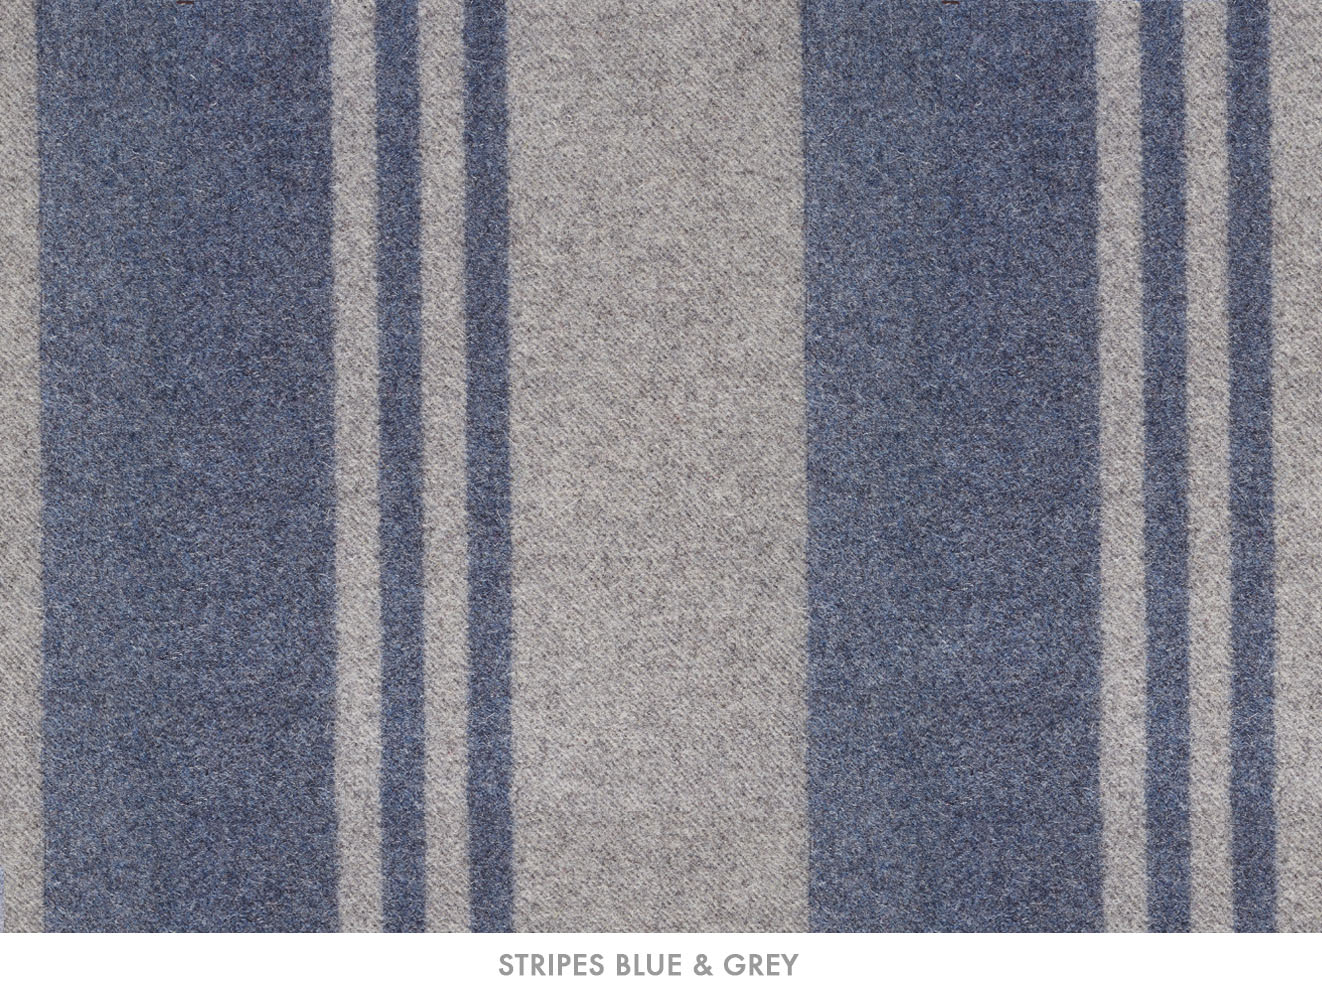 Stripes blue & grey2.jpg